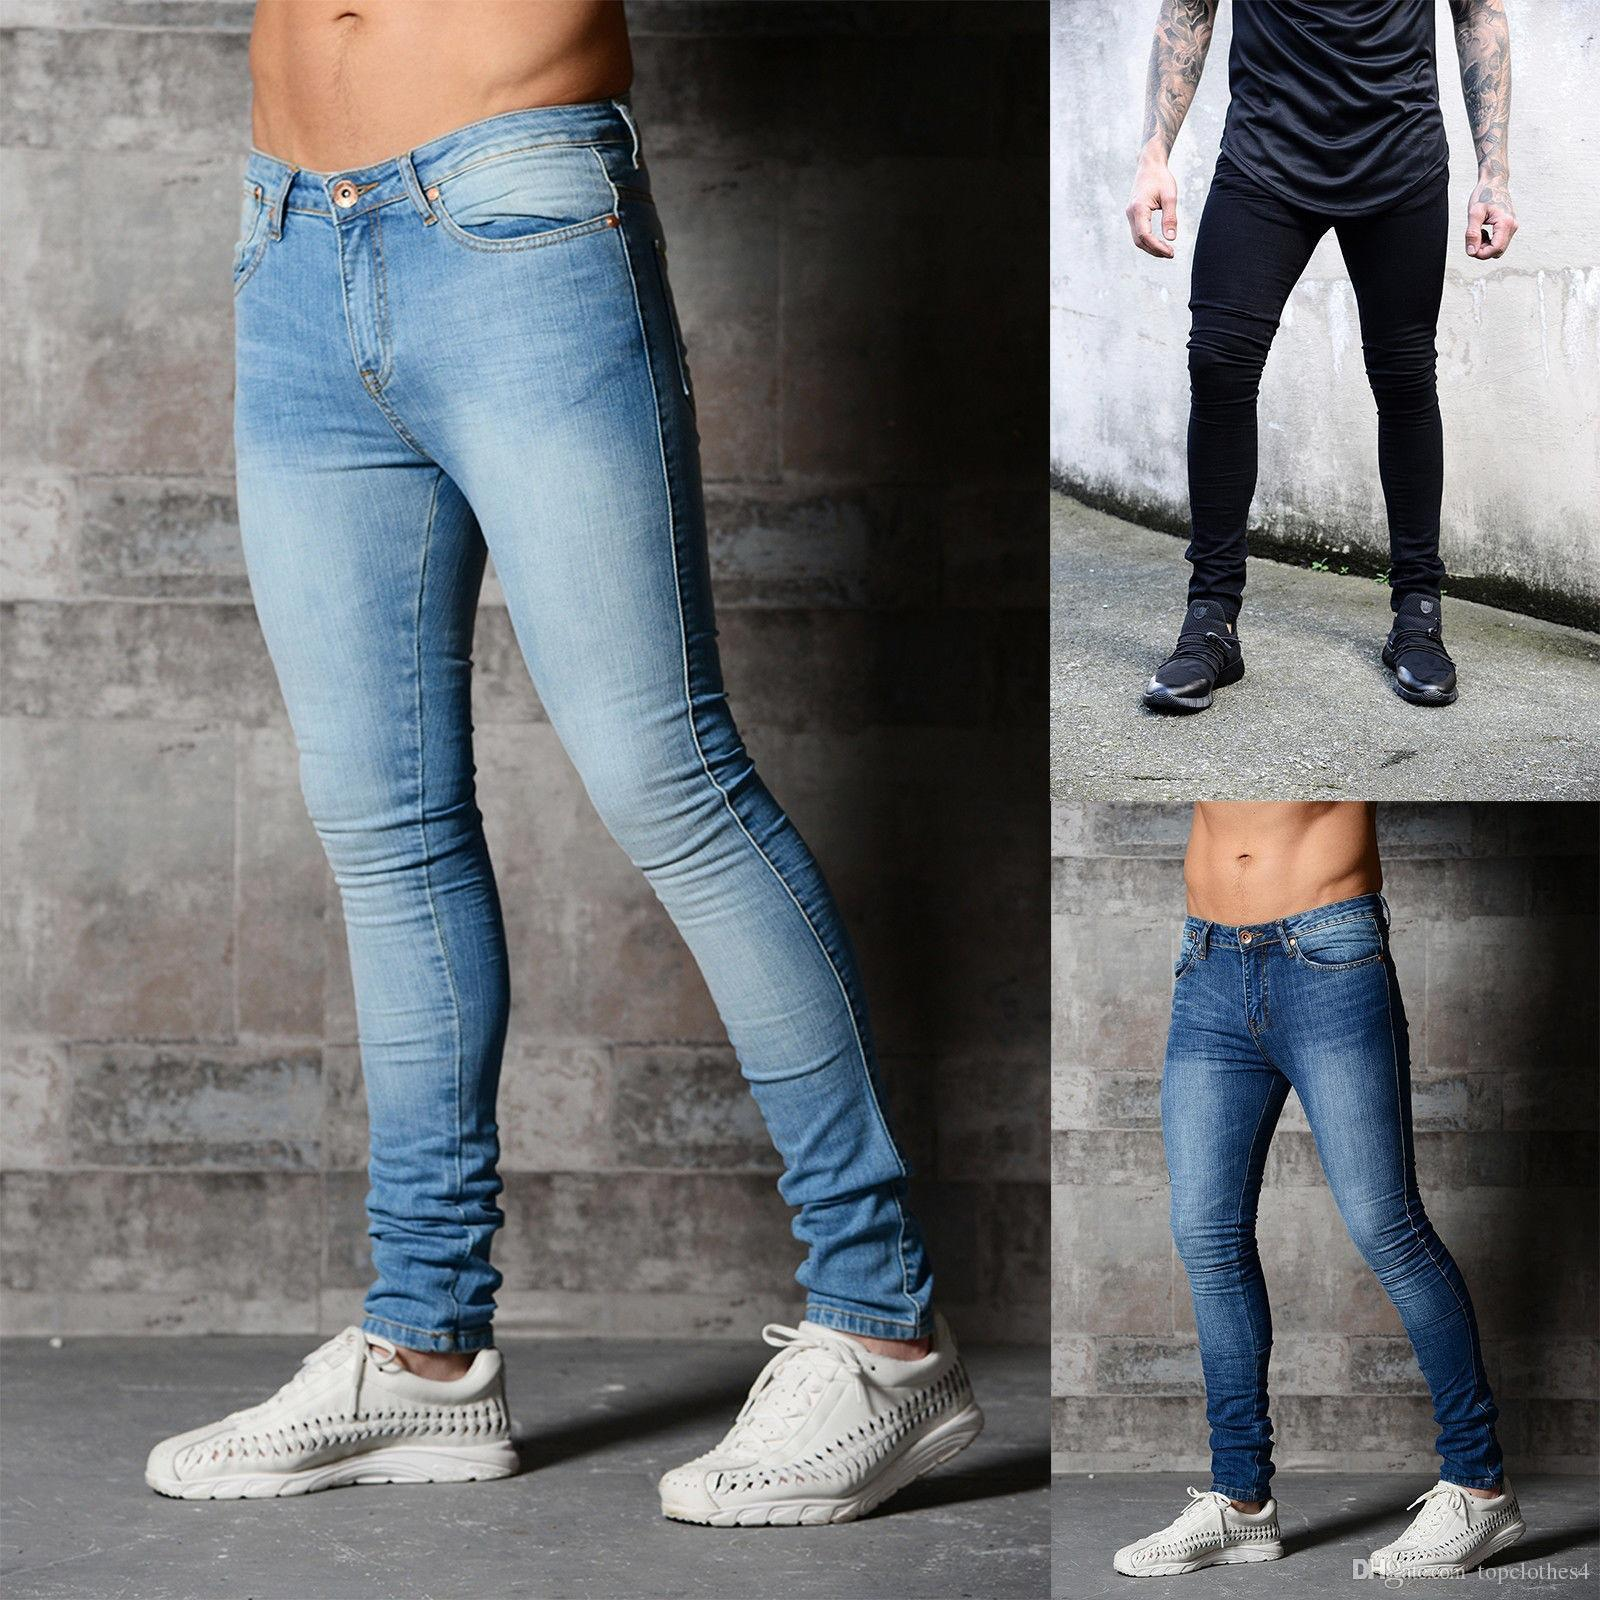 2020 2018 New Wholesale High Quality Italian Fashion Mens Jeans Famous Brand Printed Jeans Men Casual Designer Pants 100 Cotton Wholes From Topclothes4 9 13 Dhgate Com